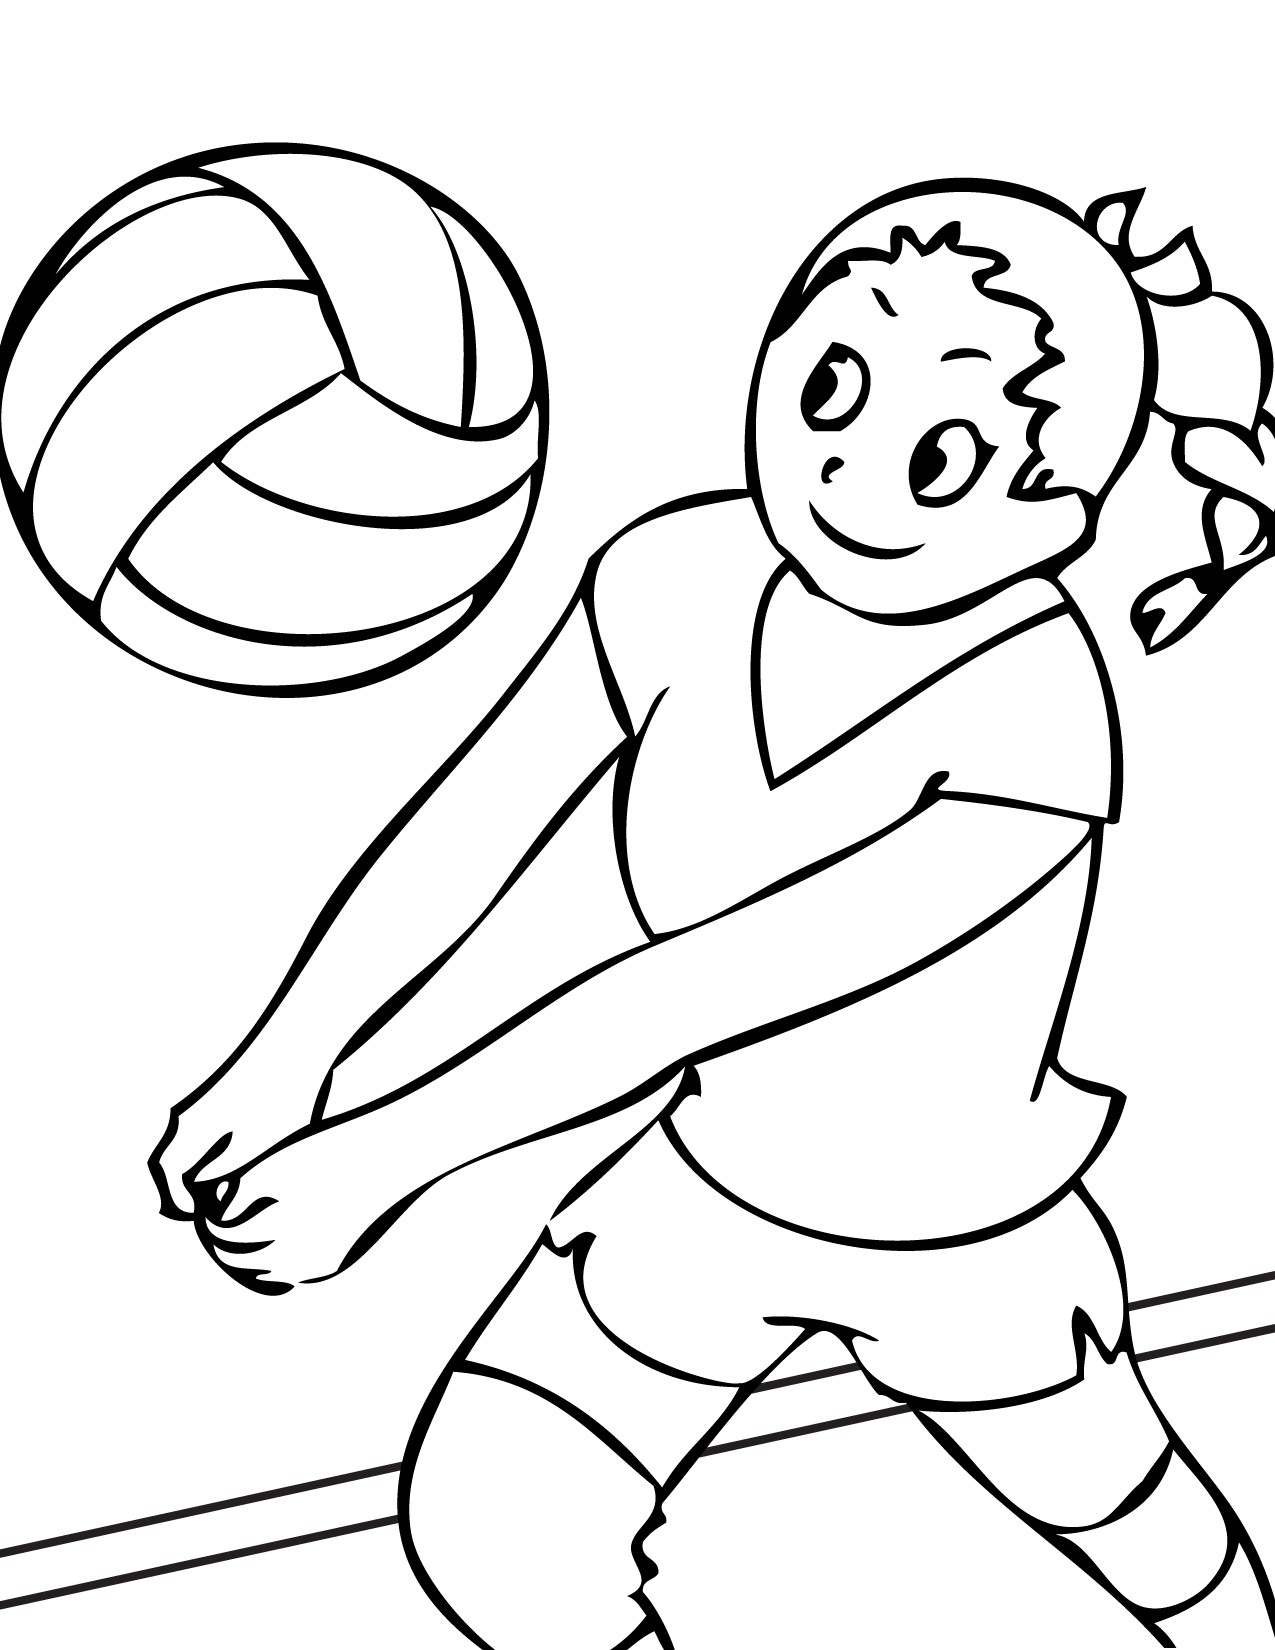 1275x1650 Pe Coloring Pages Freecolorngpages.co